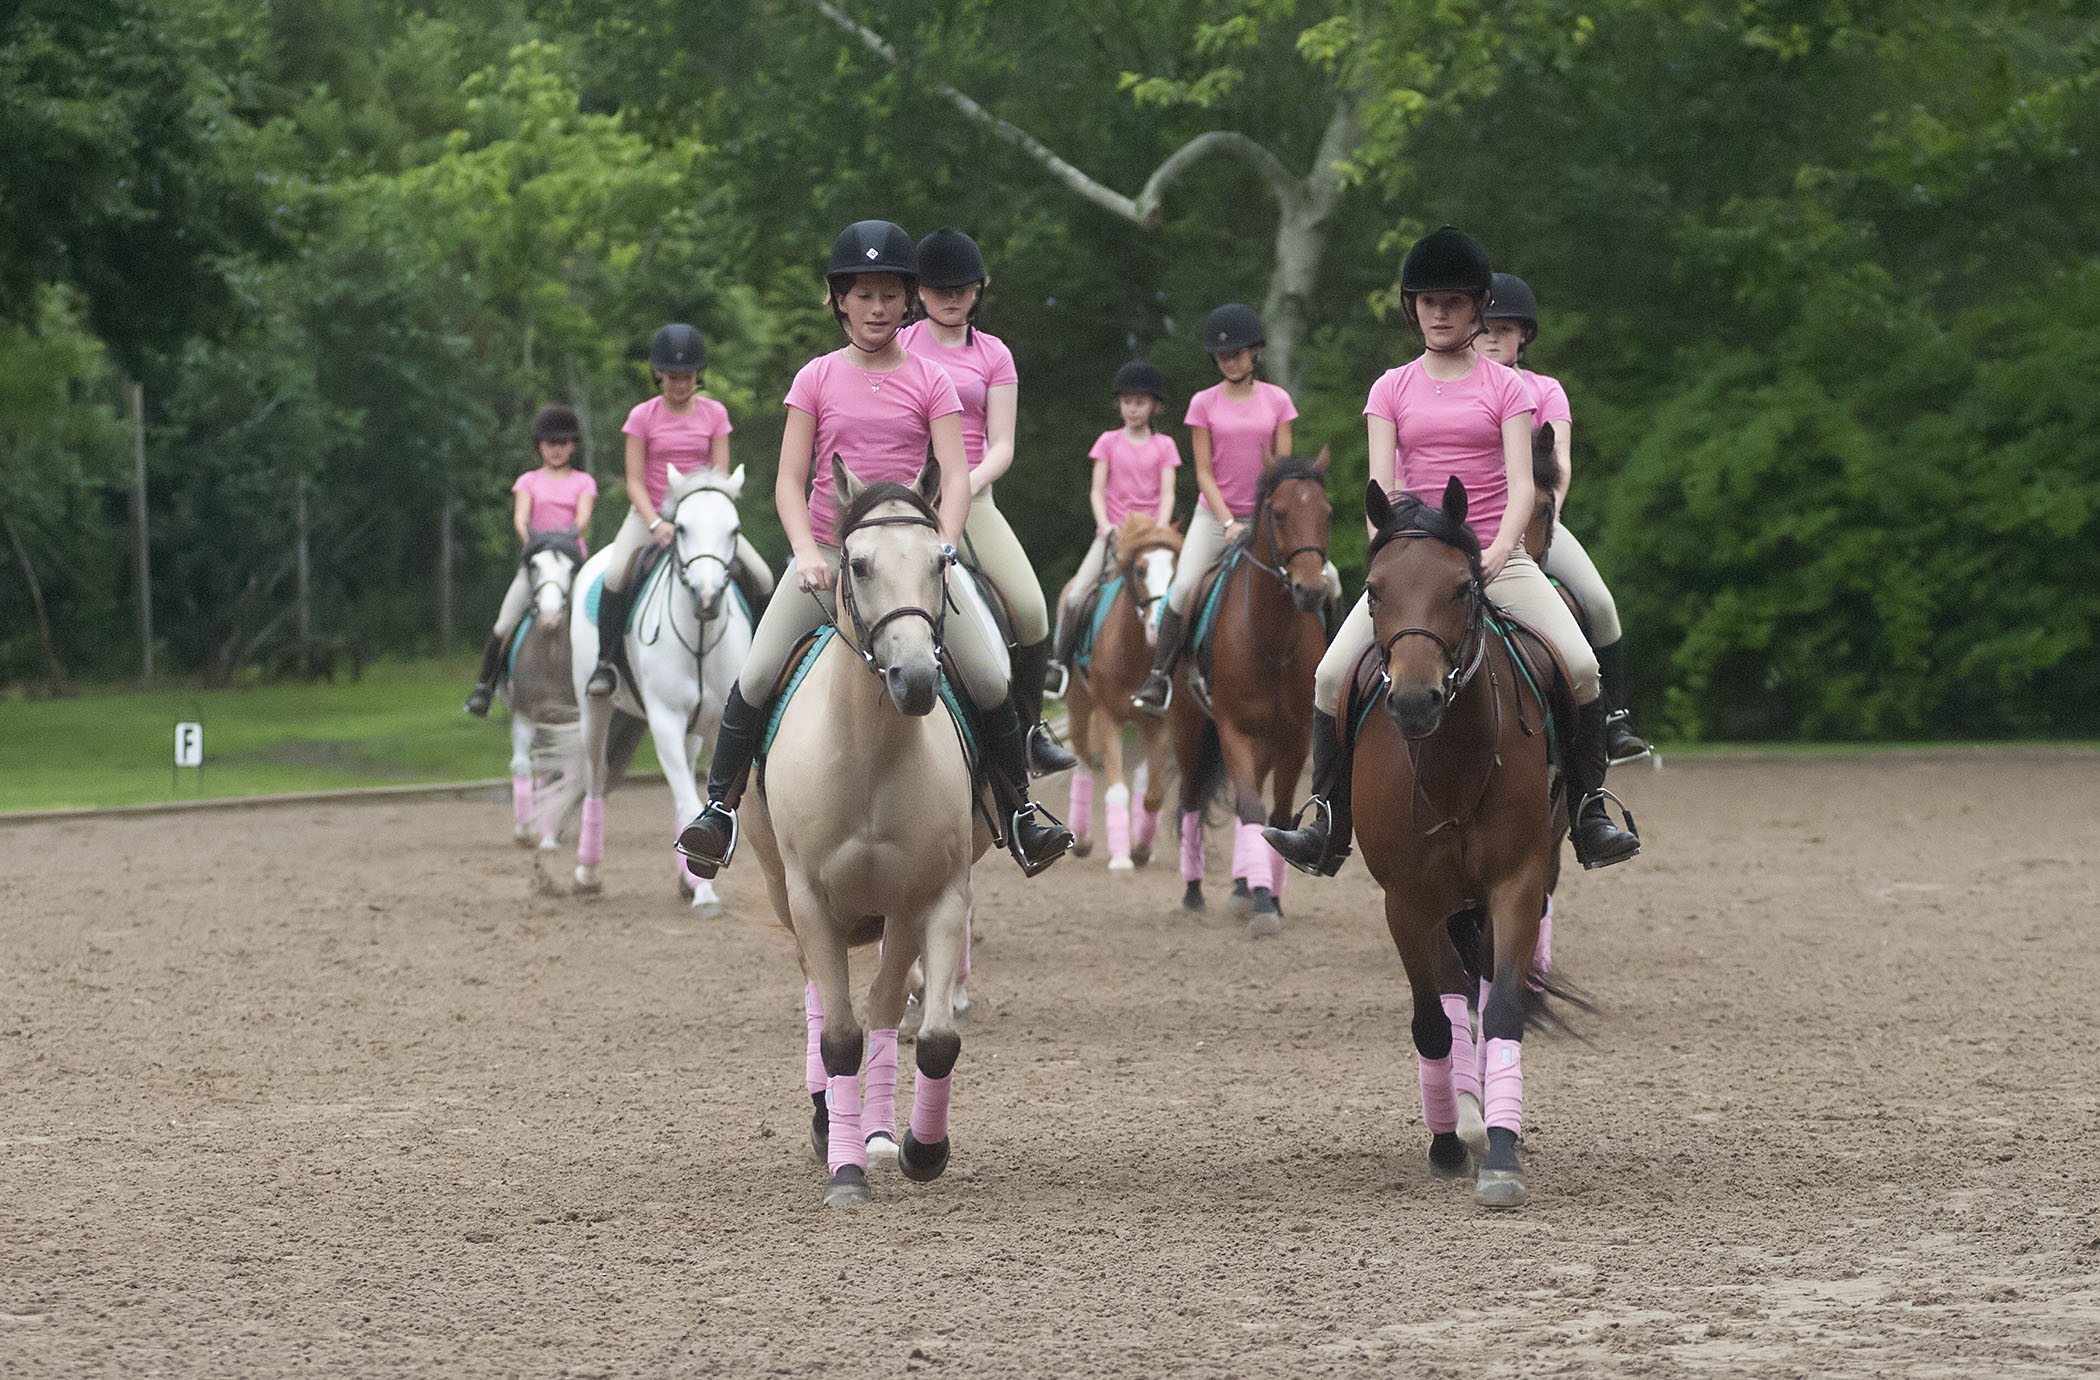 image: the pony drill team (credit: michael heller)